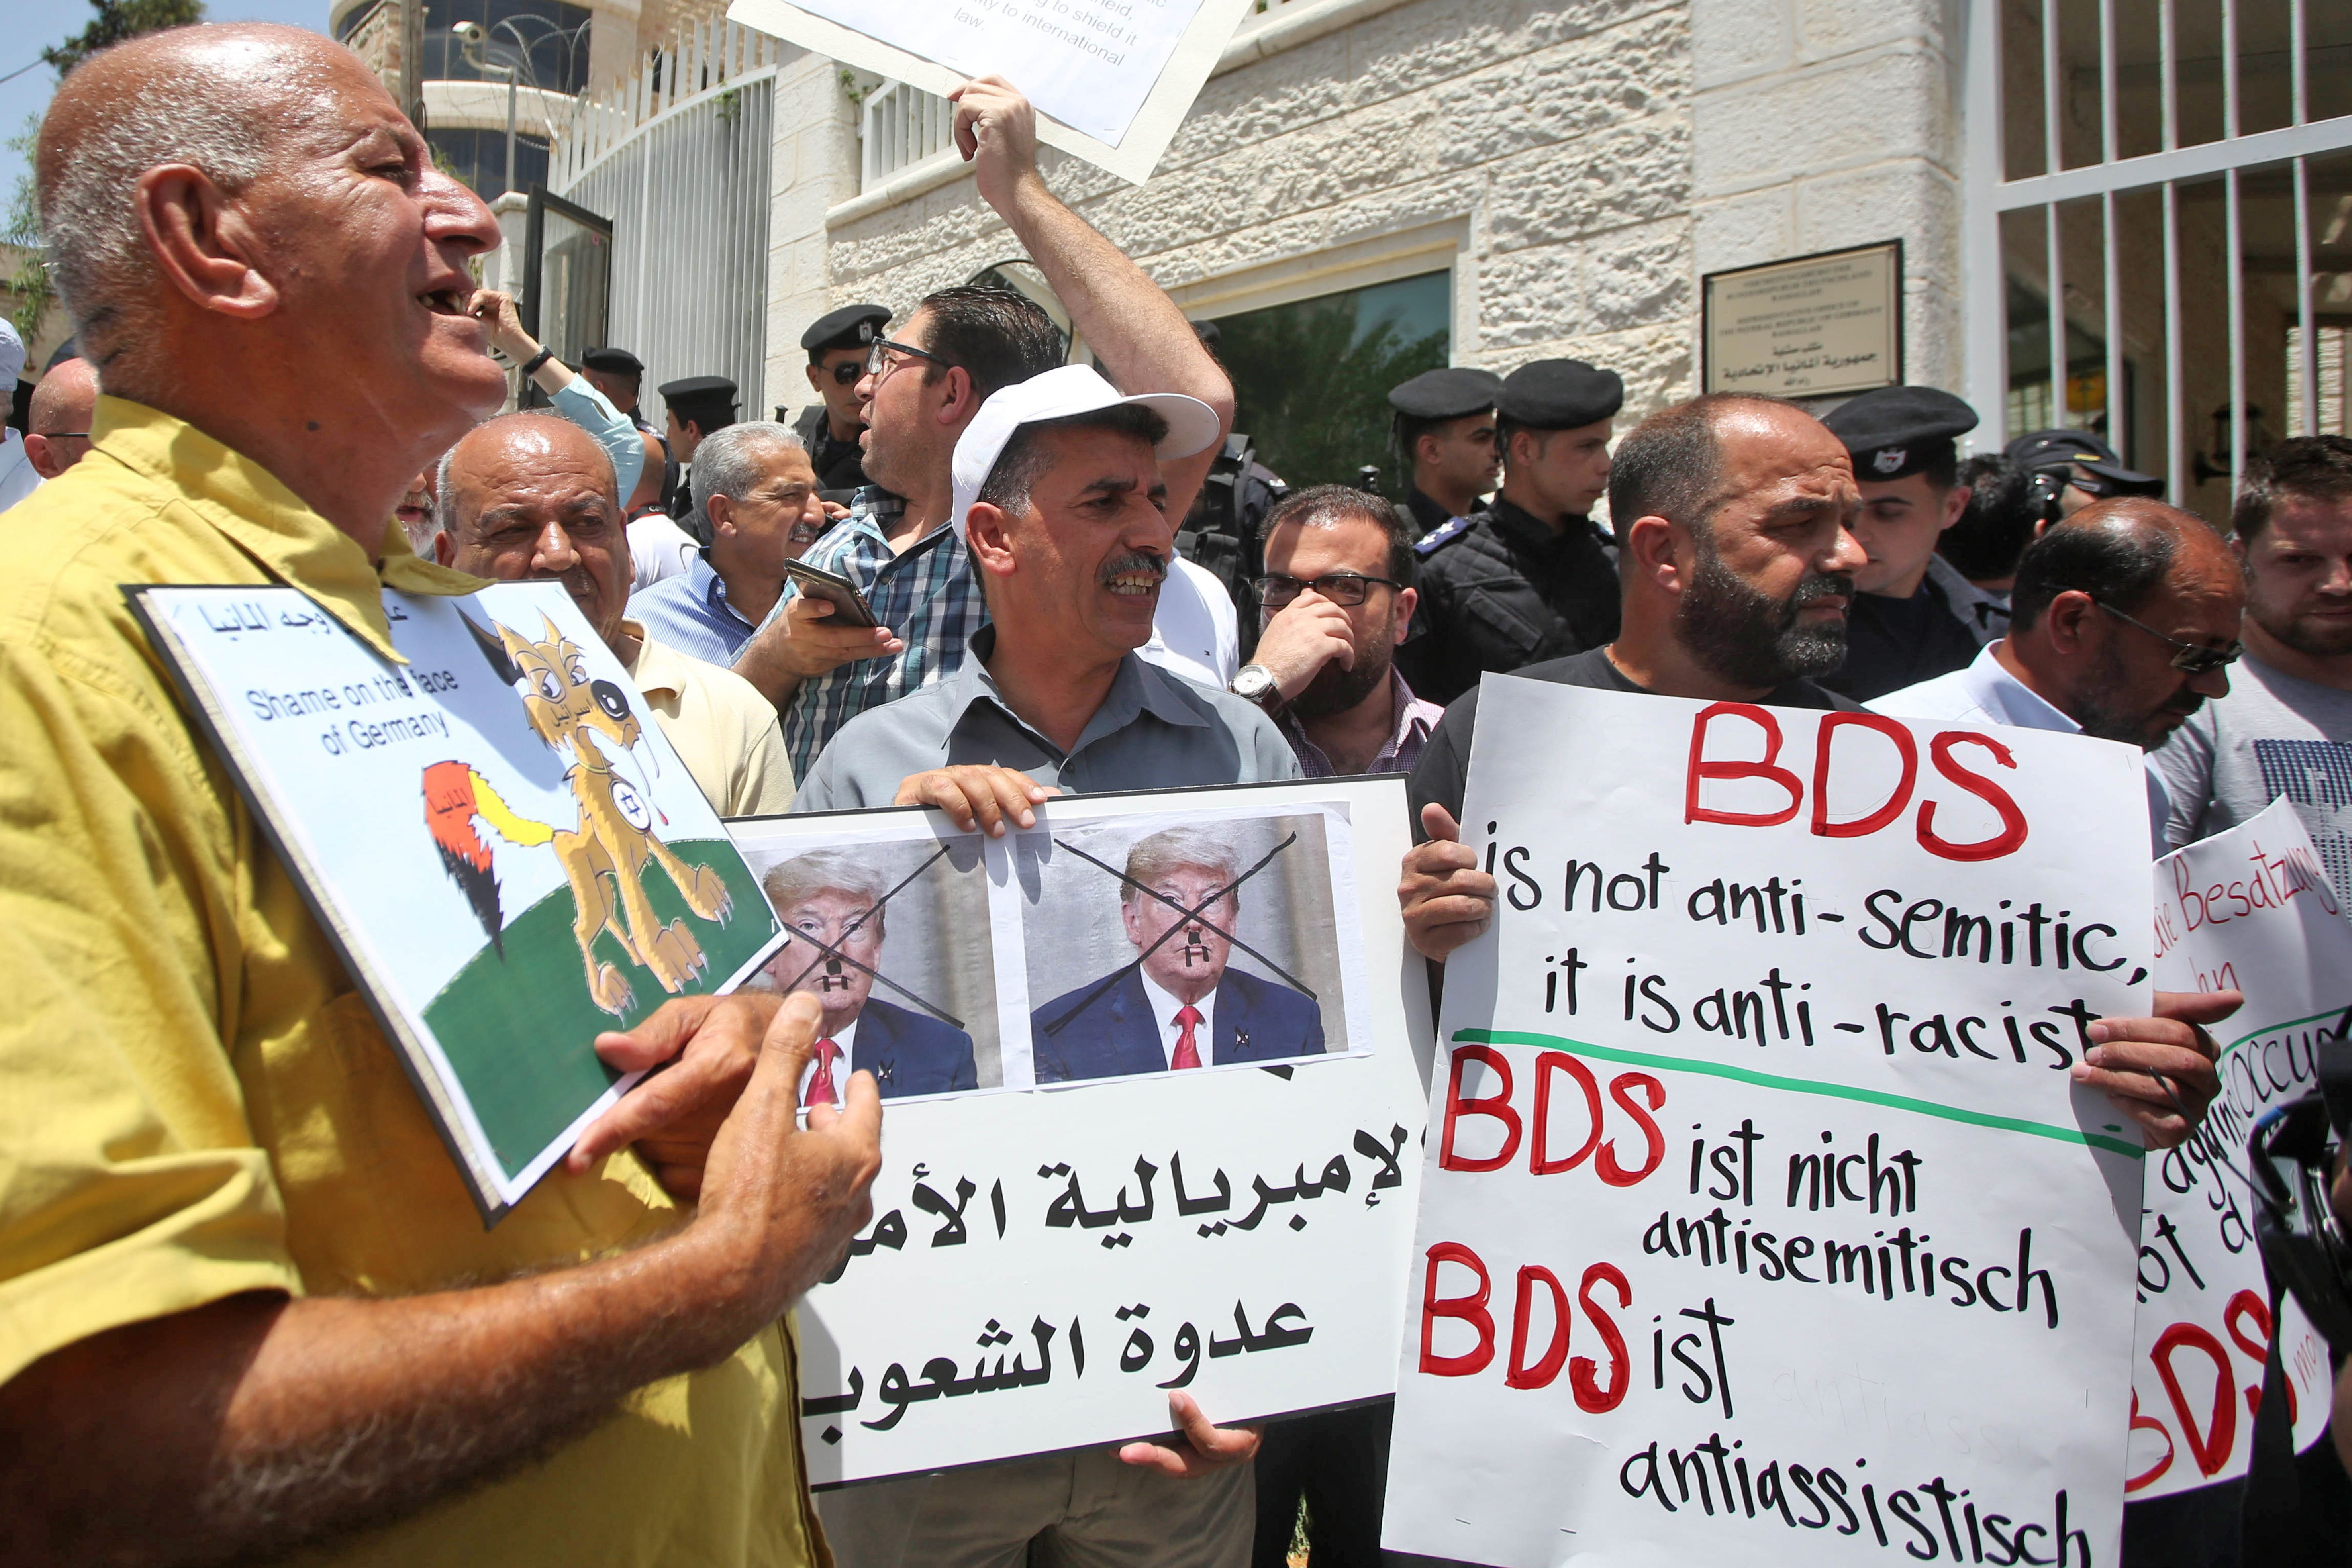 Protesters stage a demonstration outside Germany's Representative Office in Ramallah in the Palestinian West Bank on May 22, 2019, following the Bundestag's (German parliament) condemnation of the Boycott, Divestment, Sanctions (BDS) movement as anti-Semitic. (AFP/Getty Images)